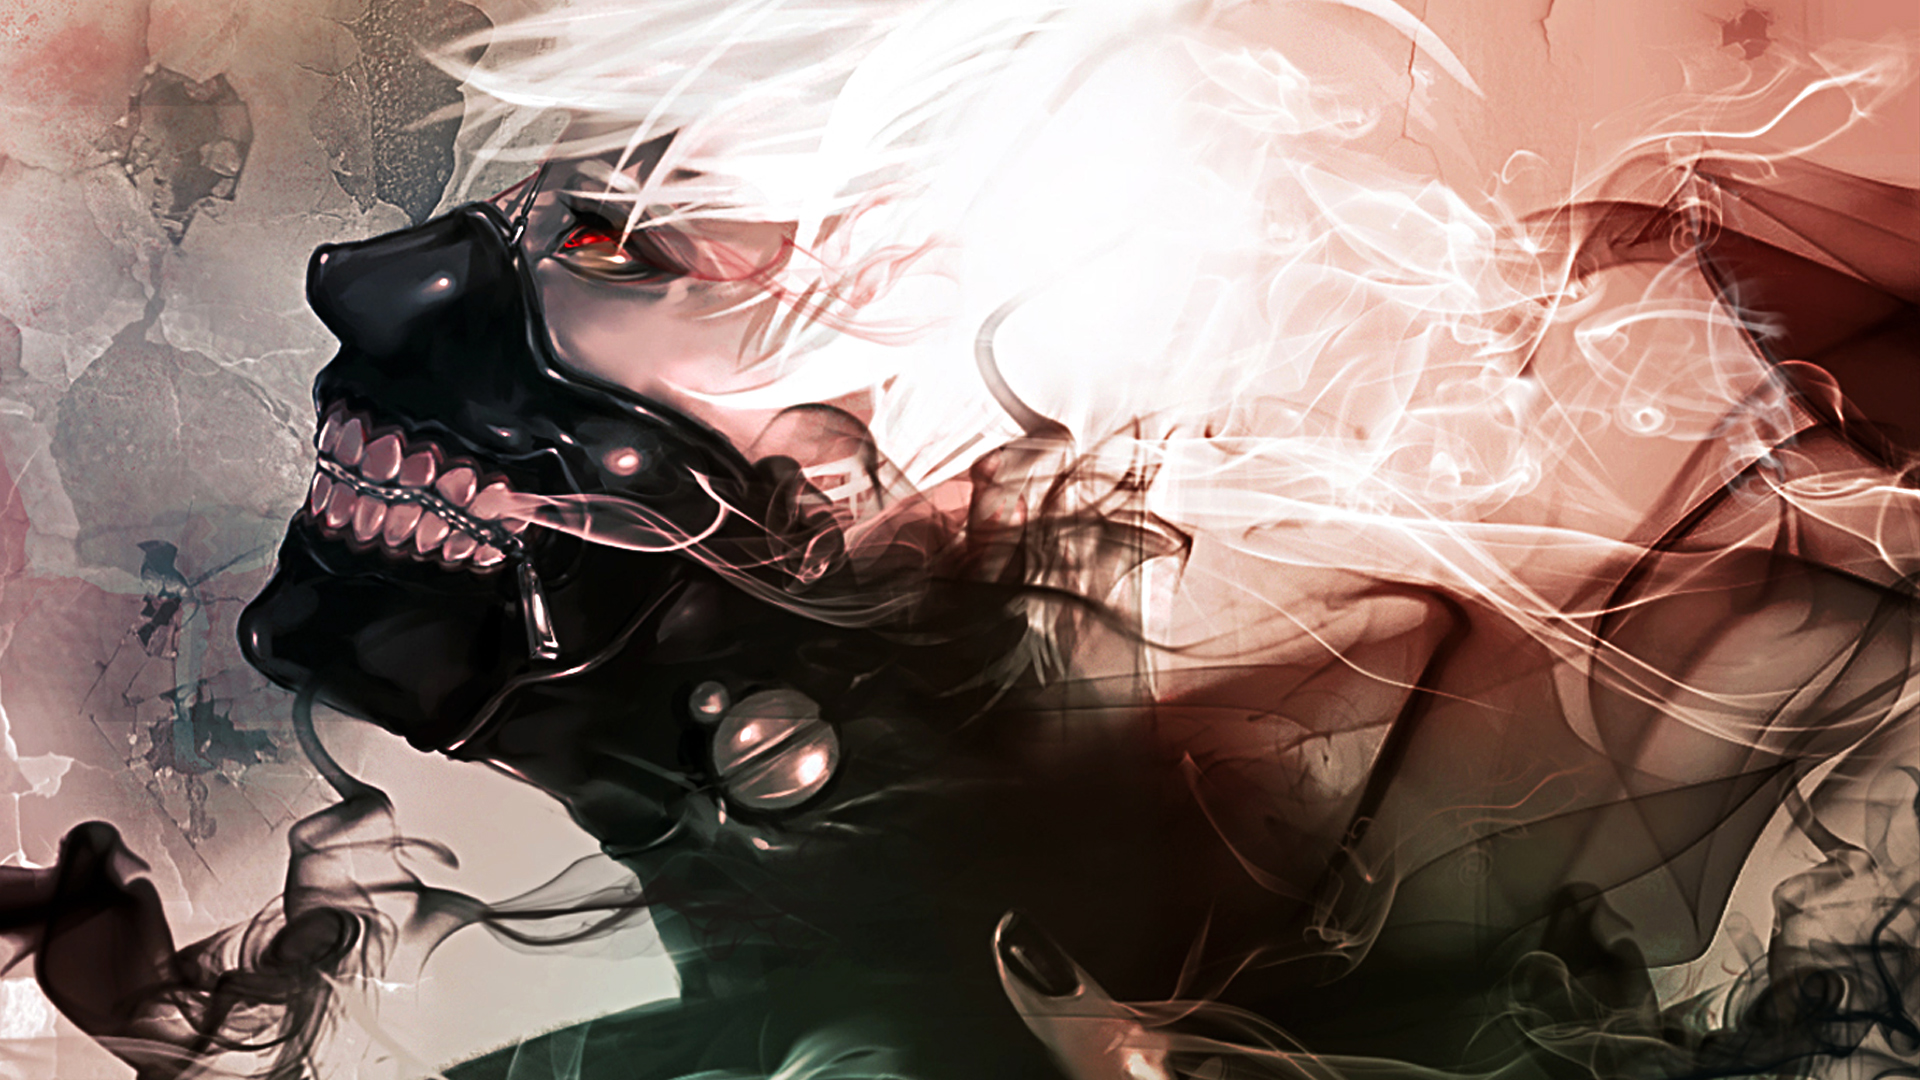 Hd wallpaper tokyo ghoul - Tokyo Ghoul Otakus Images Tokyo Ghoul Kaneki Ken Mask Hd 1920x1080 Hd Wallpaper And Background Photos